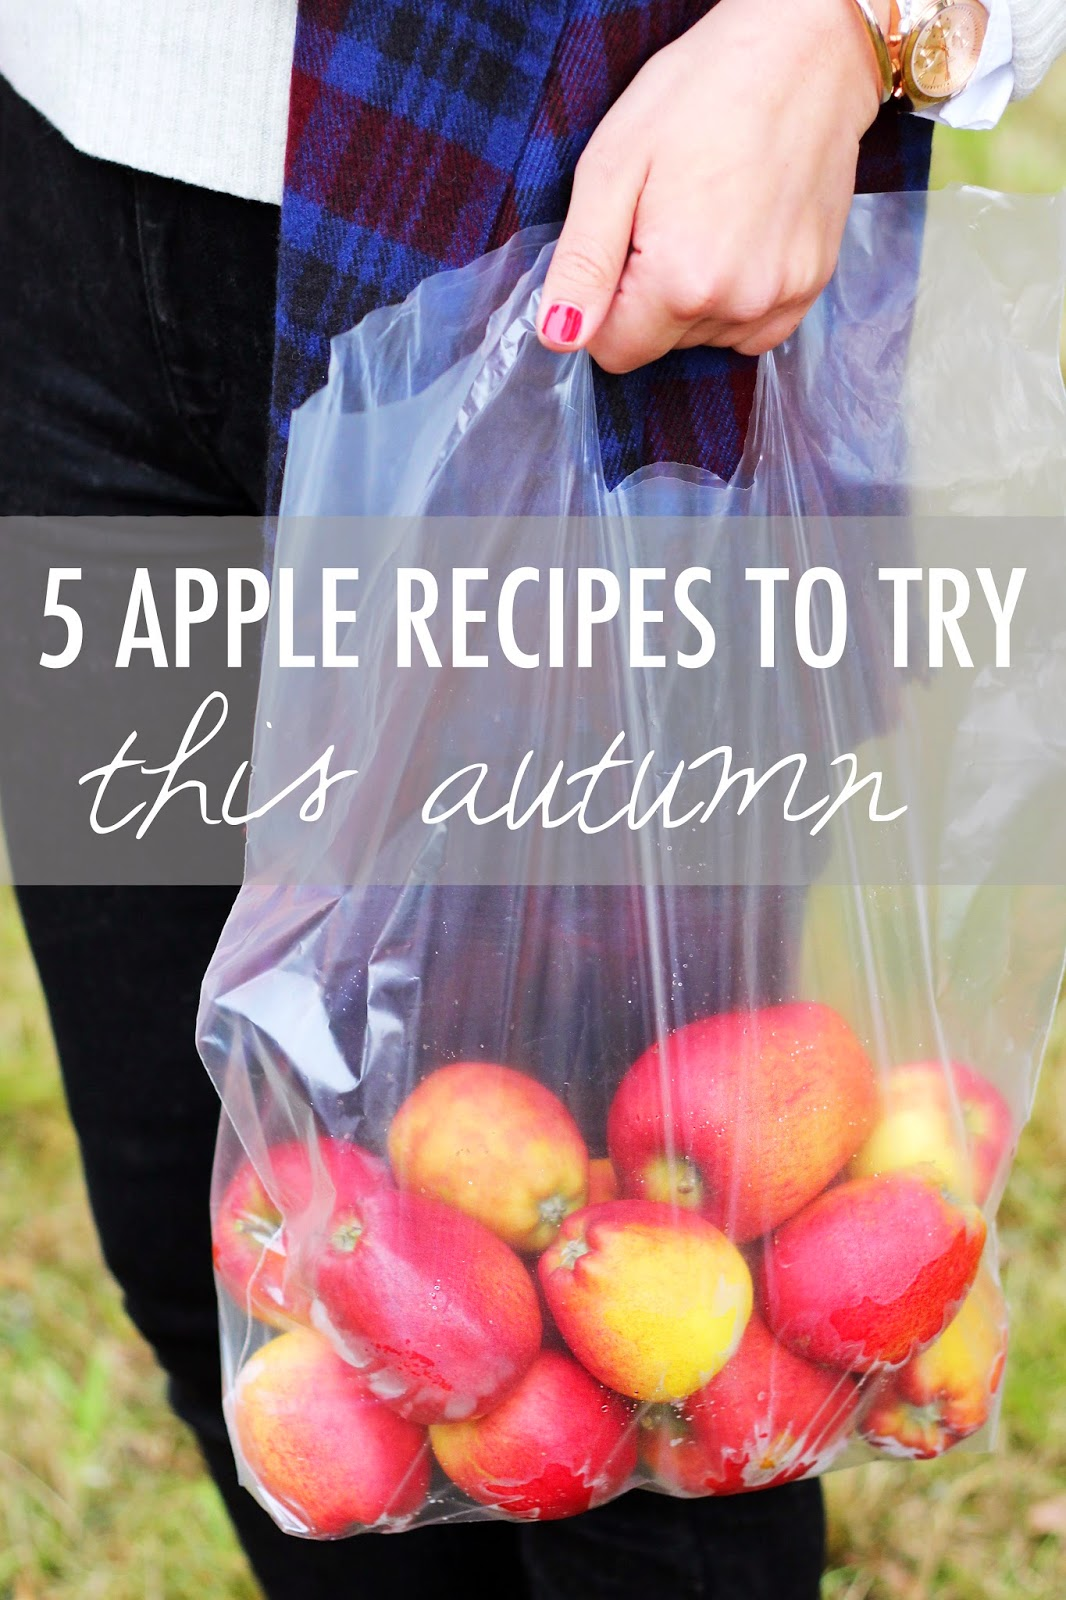 5 Apple Recipes To Try This Autumn